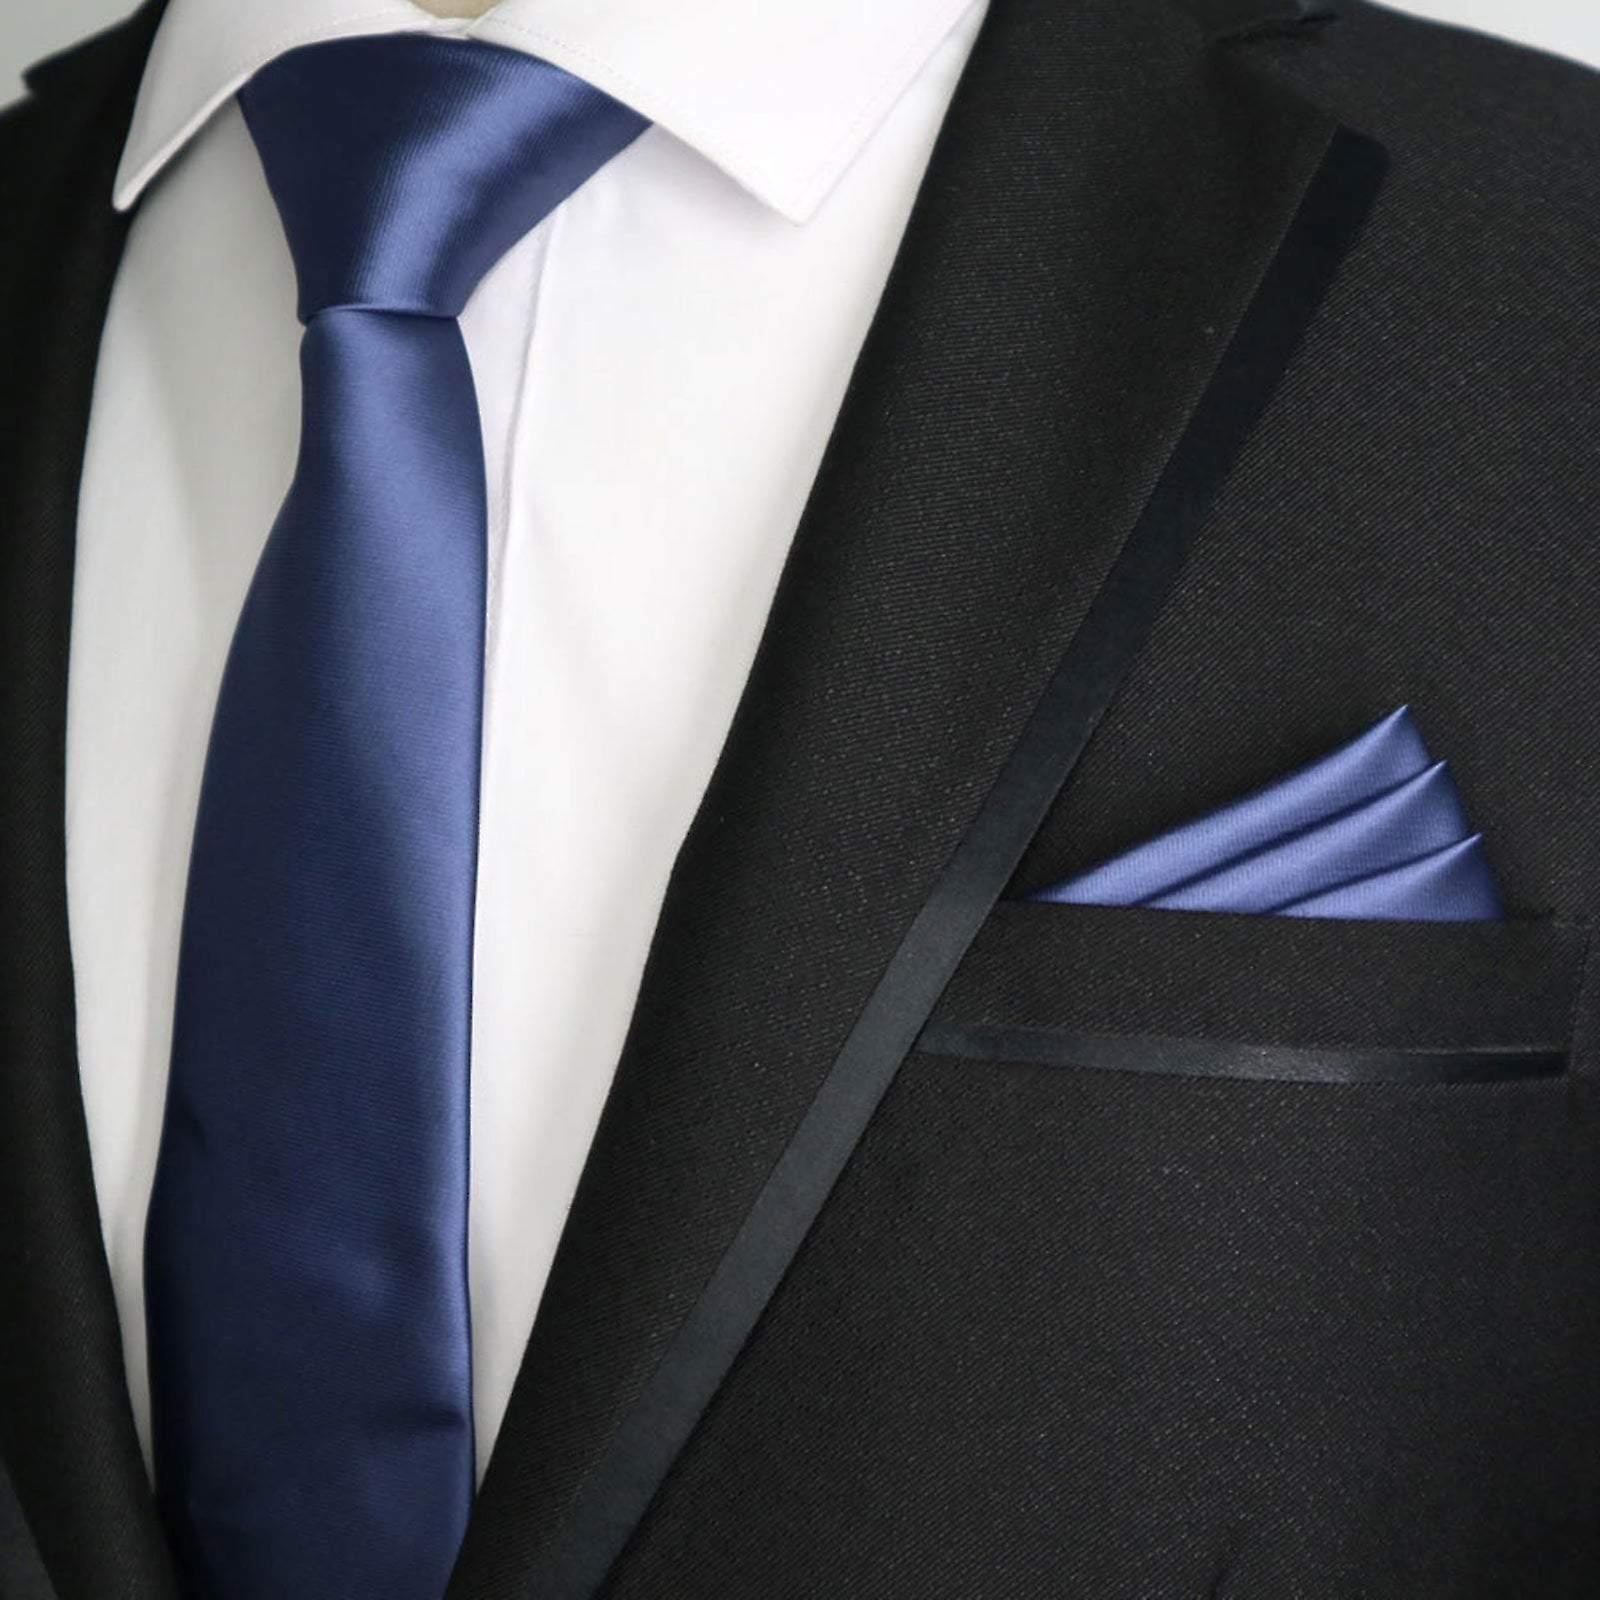 Slate blue solid satin finish slim tie & pocket square